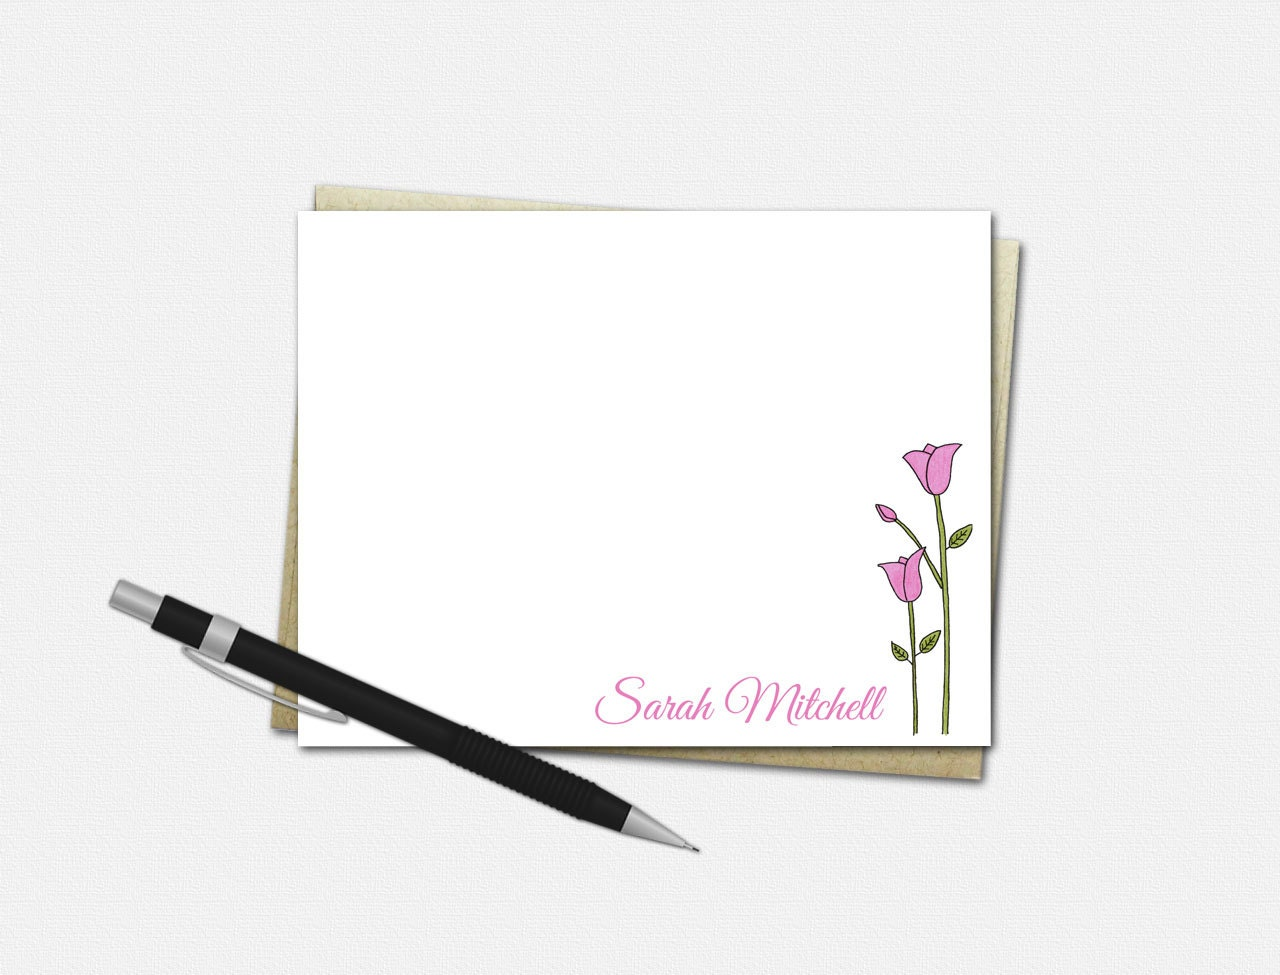 personalized tulip note cards set of 10 flat note cards personalized tulip stationery - Personalized Flat Note Cards